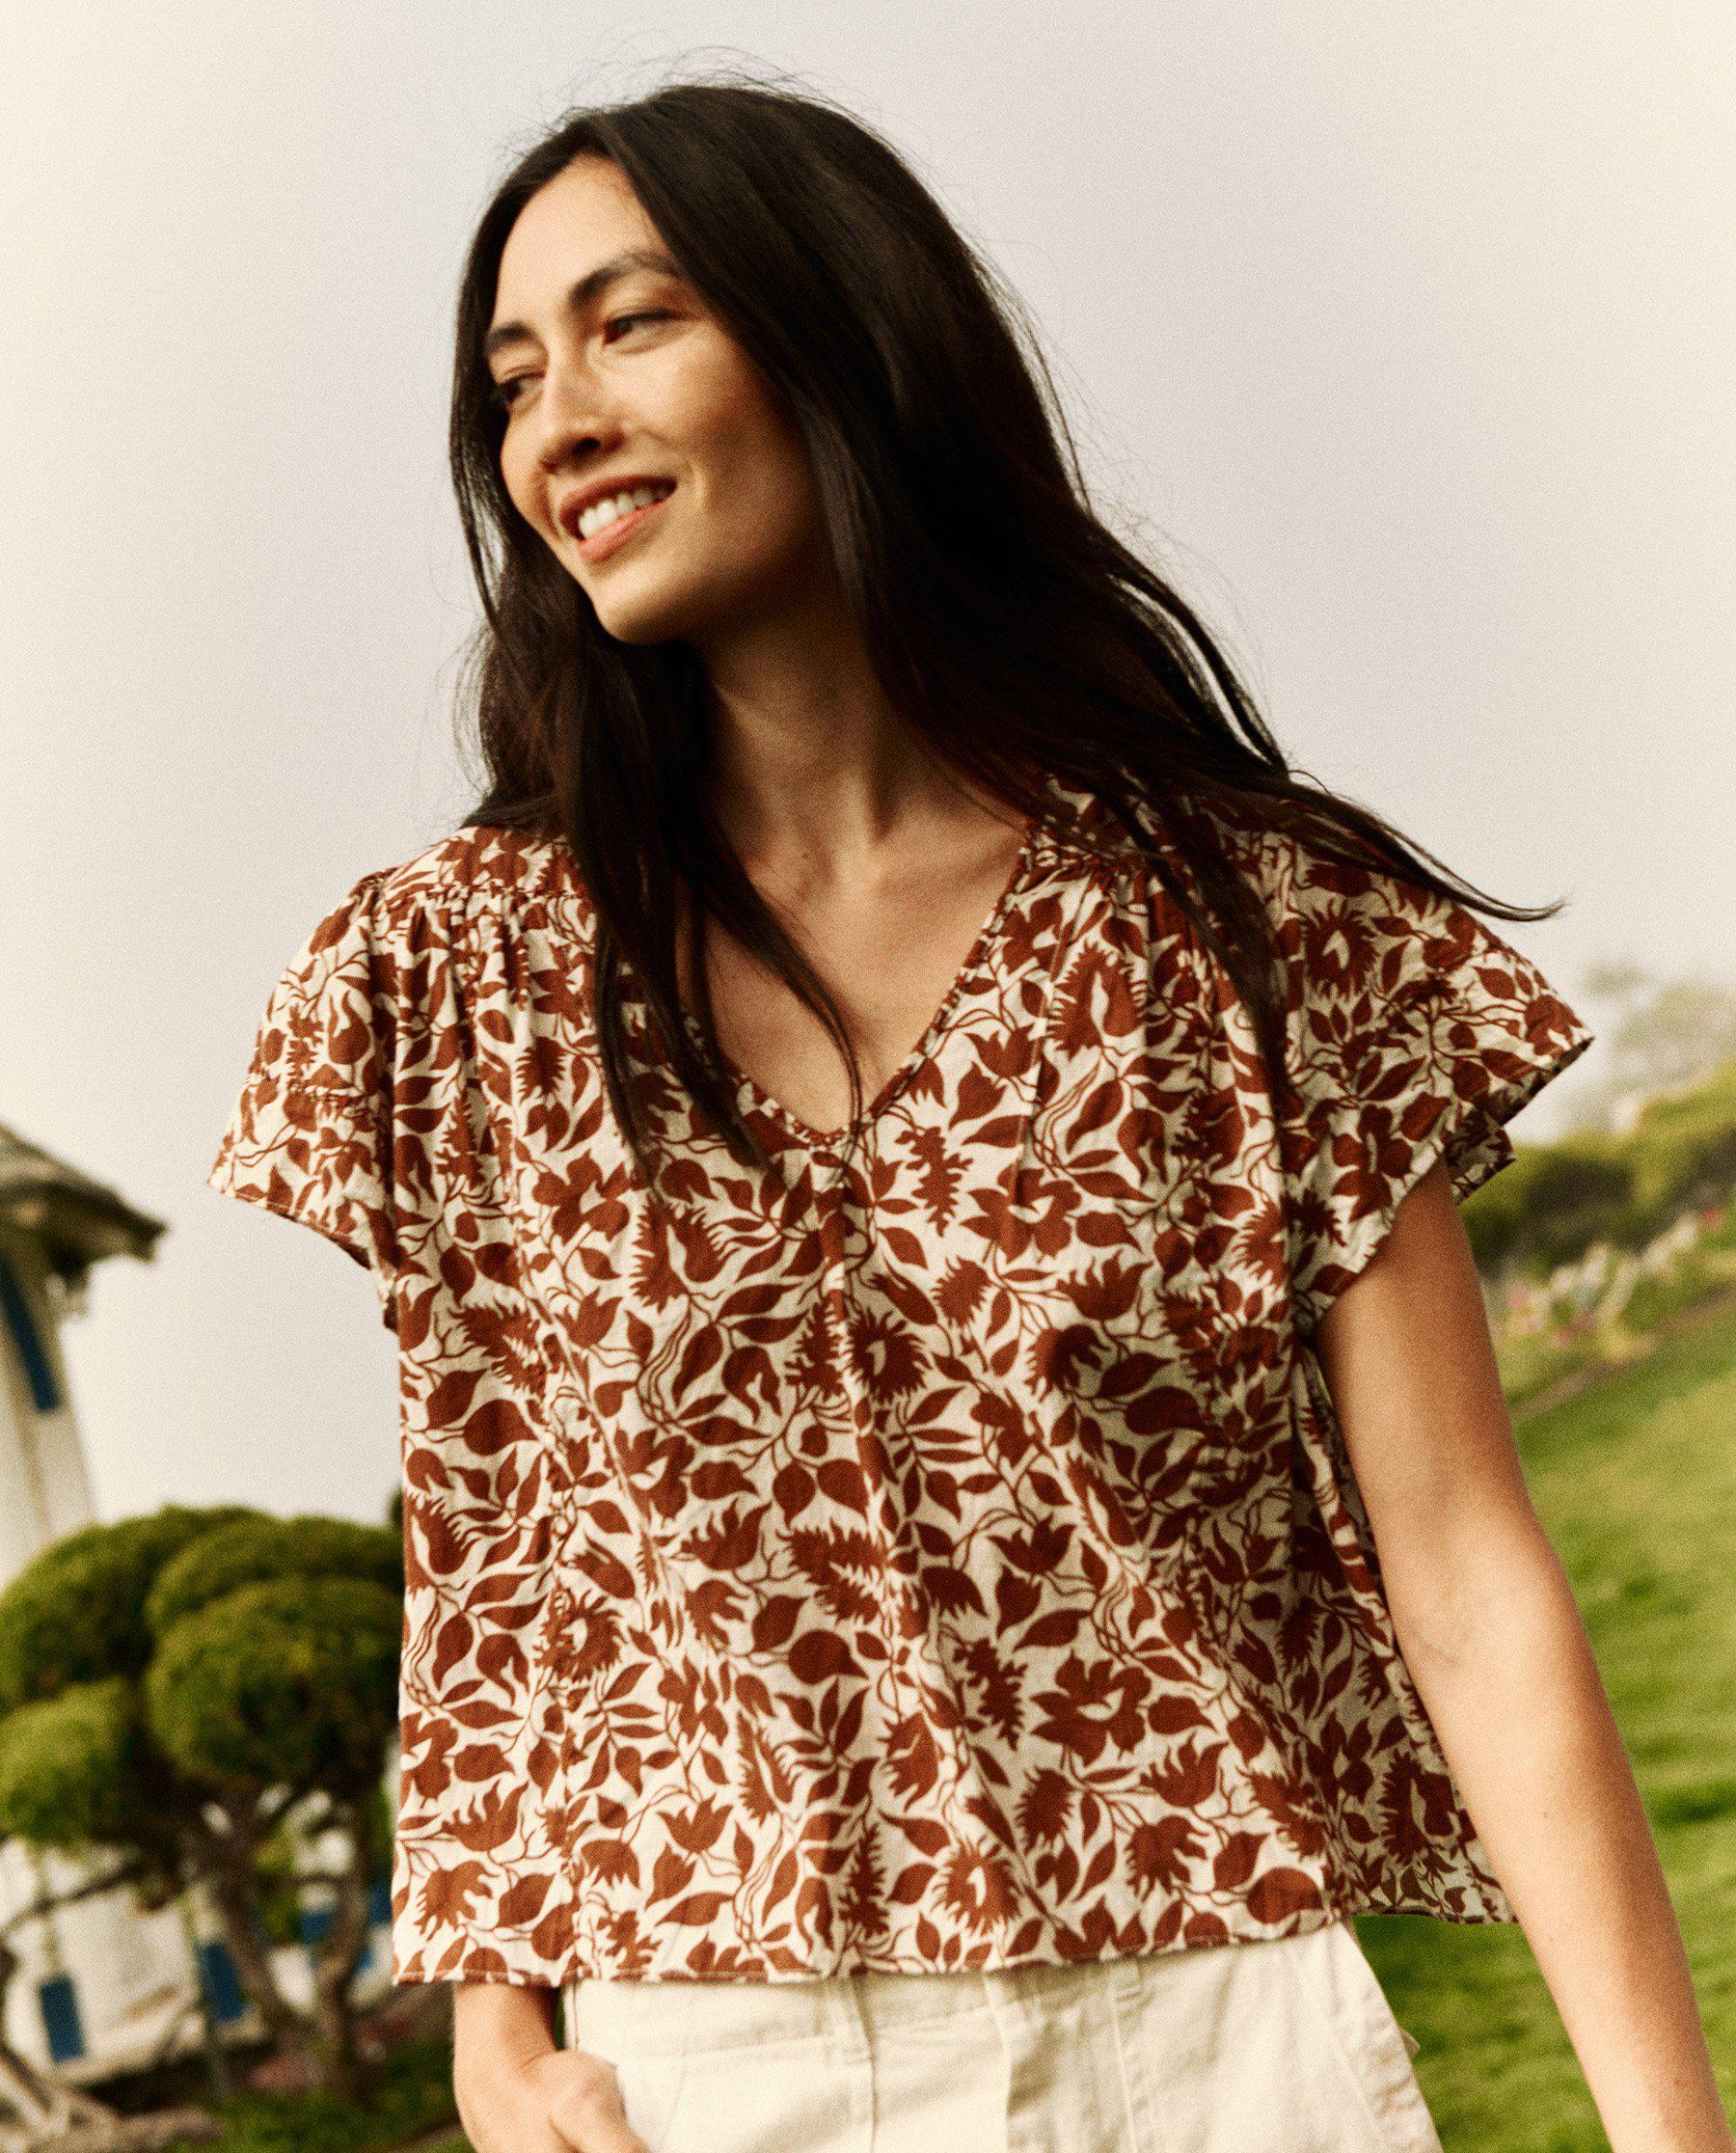 The Whip Stitched Fern Top. -- Brown Blossom Floral 1